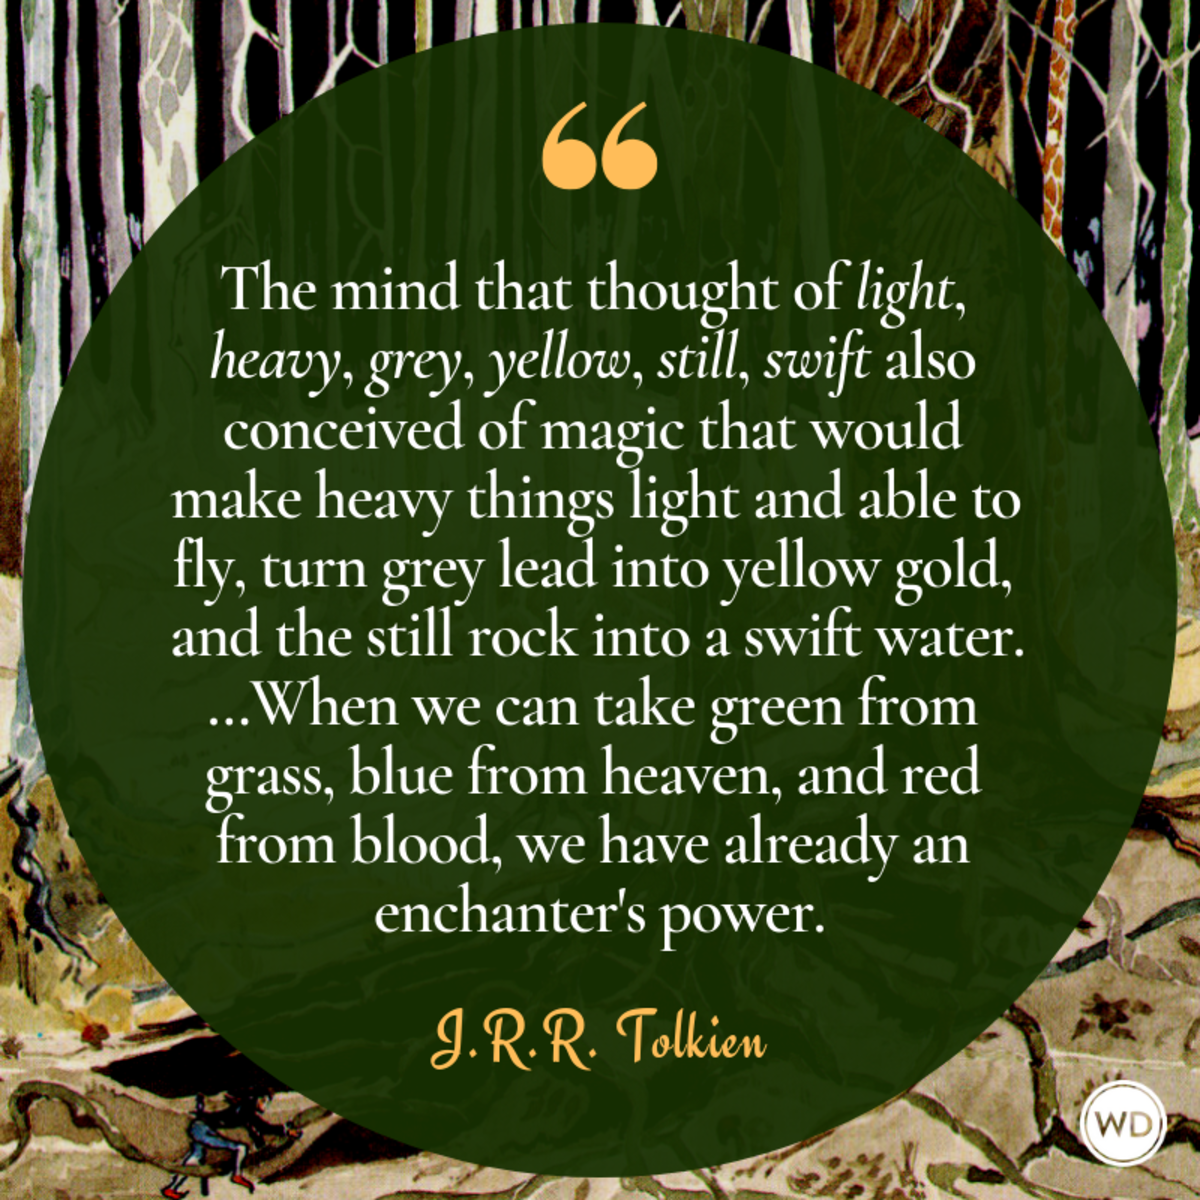 Blessed Are The Legend Makers 11 J R R Tolkien Quotes For Writers Writer S Digest Ashley howard voice coach, stroud. j r r tolkien quotes for writers